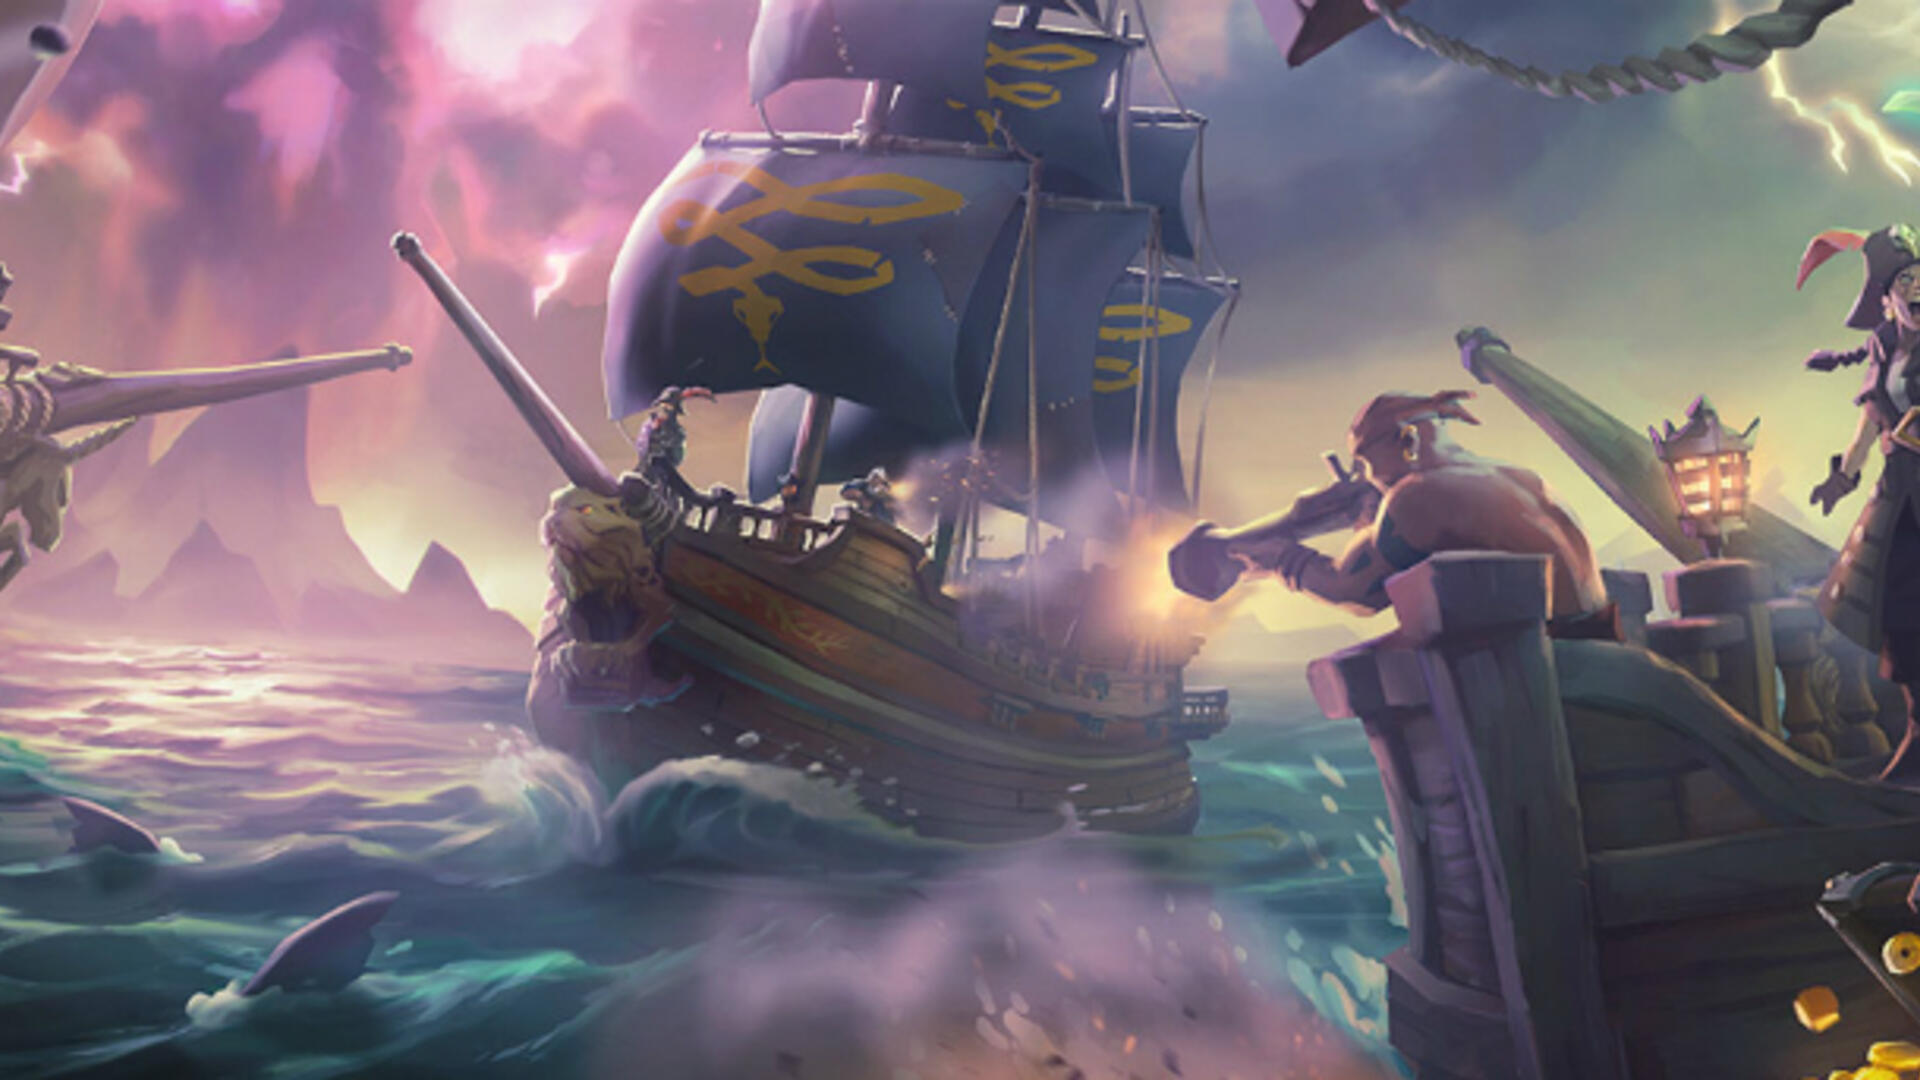 Sea of Thieves is Rare's Best-Selling Launch Month Game in Over 20 Years